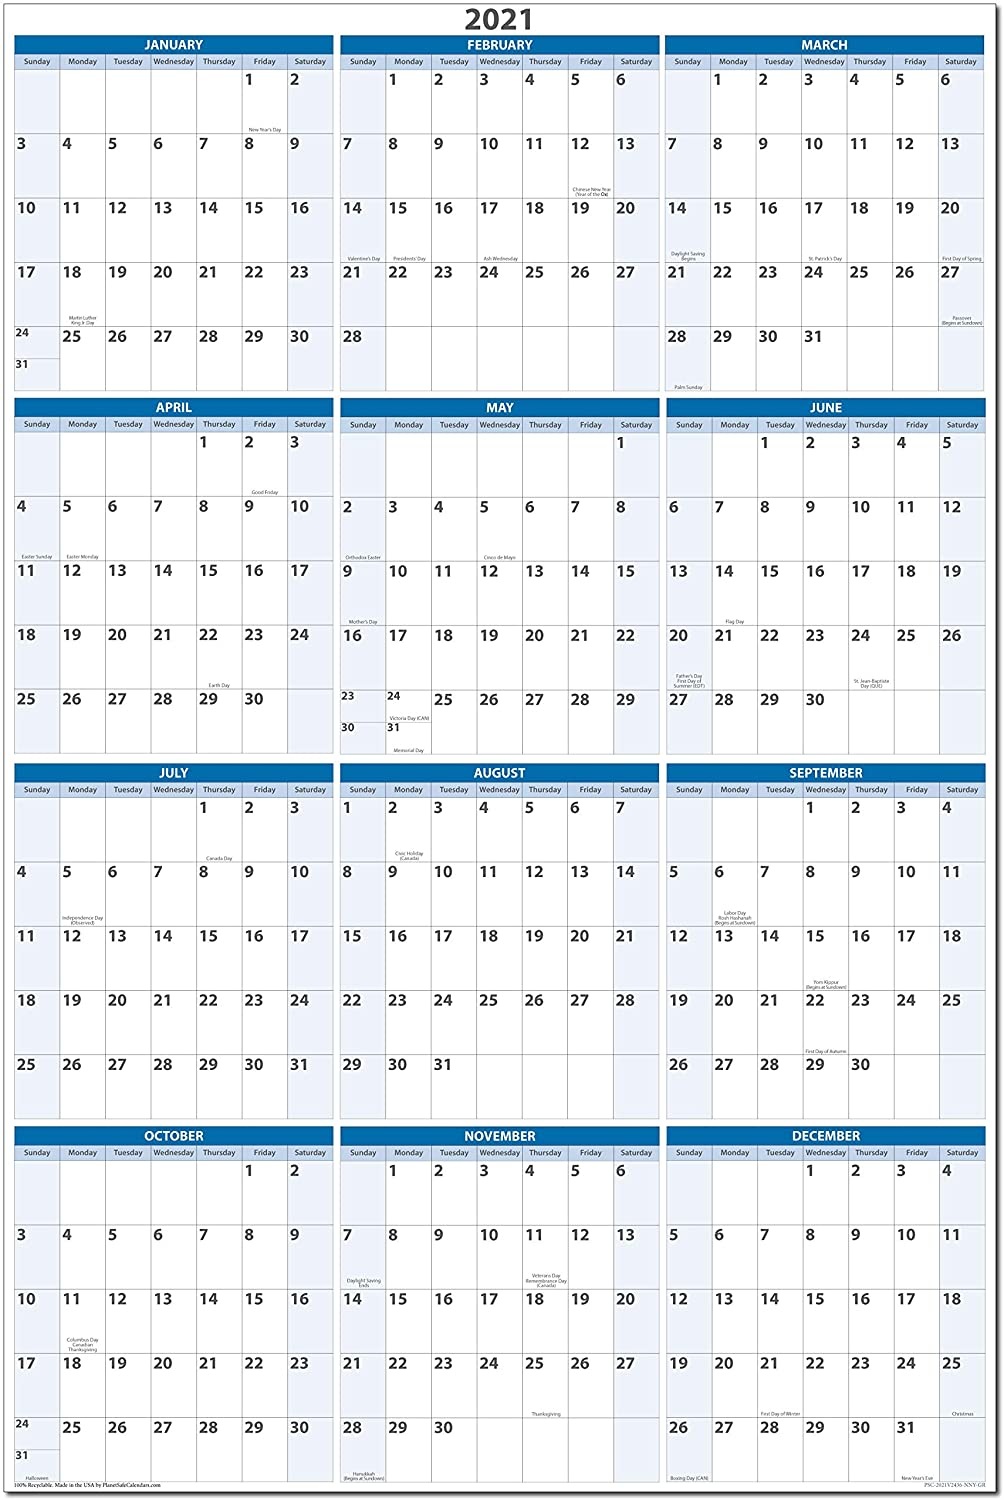 32 x 48 Dry and Wet Erasable Wall Calendars by PlanetSafe Calendars. Best in It's Class (Sky Blue Vertical 2021)